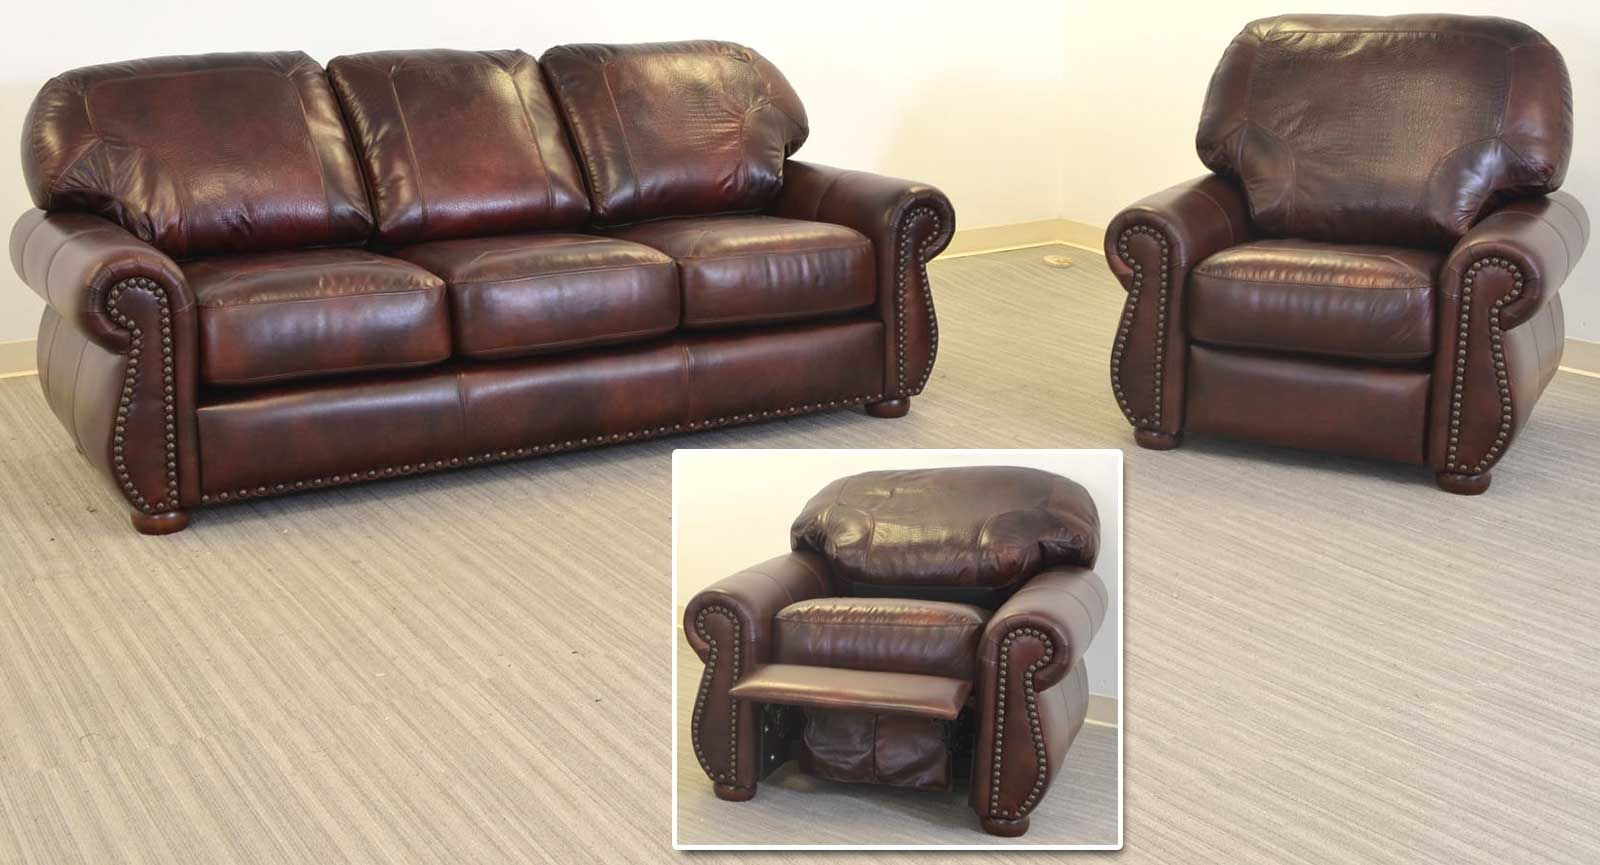 Made in the USA, the Addison Leather Sofa & Recliner | Vintage ...